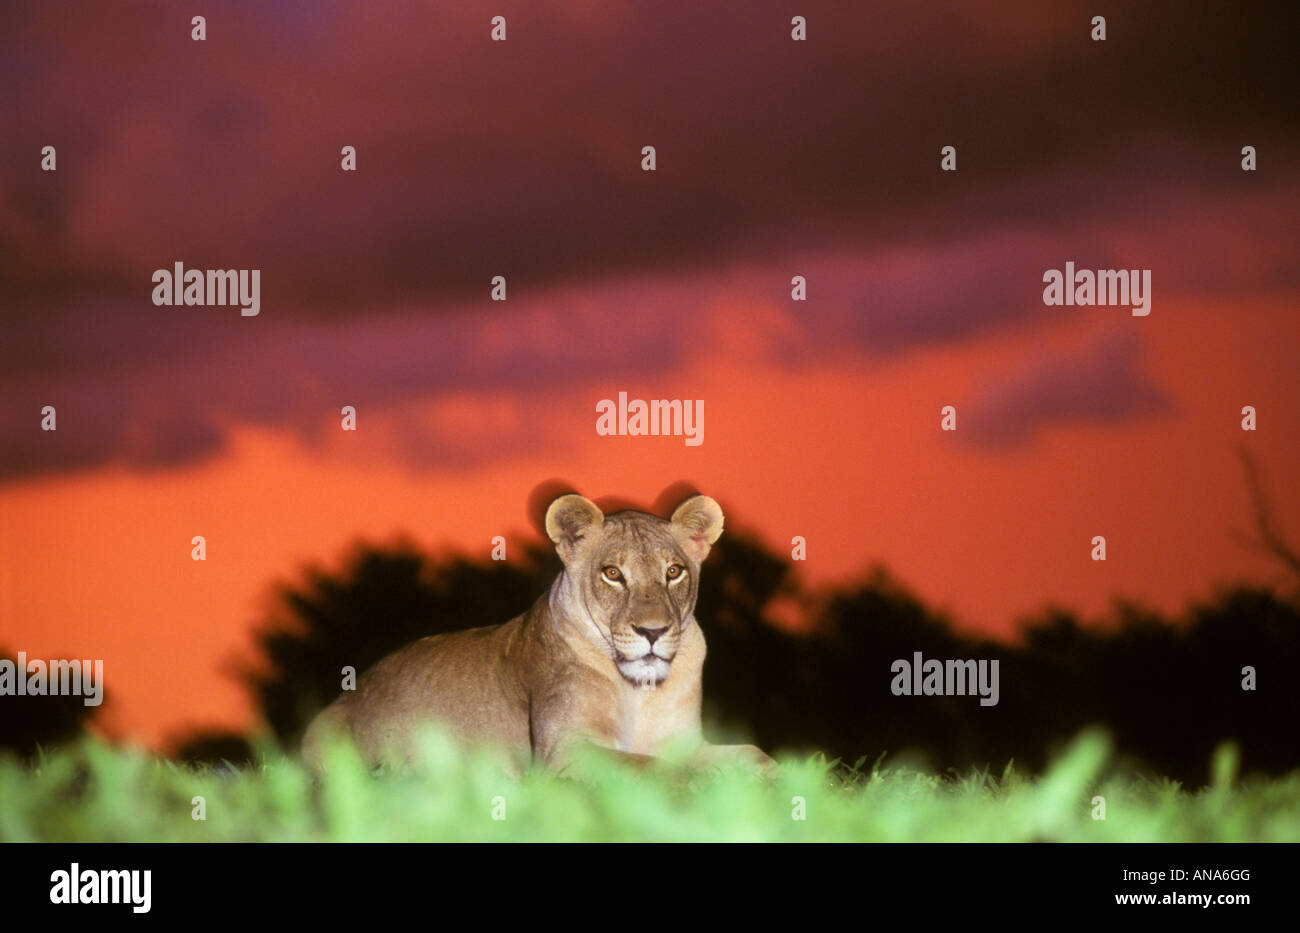 A Lion at sunset on Savuti marsh (Panthera leo) Stock Photo